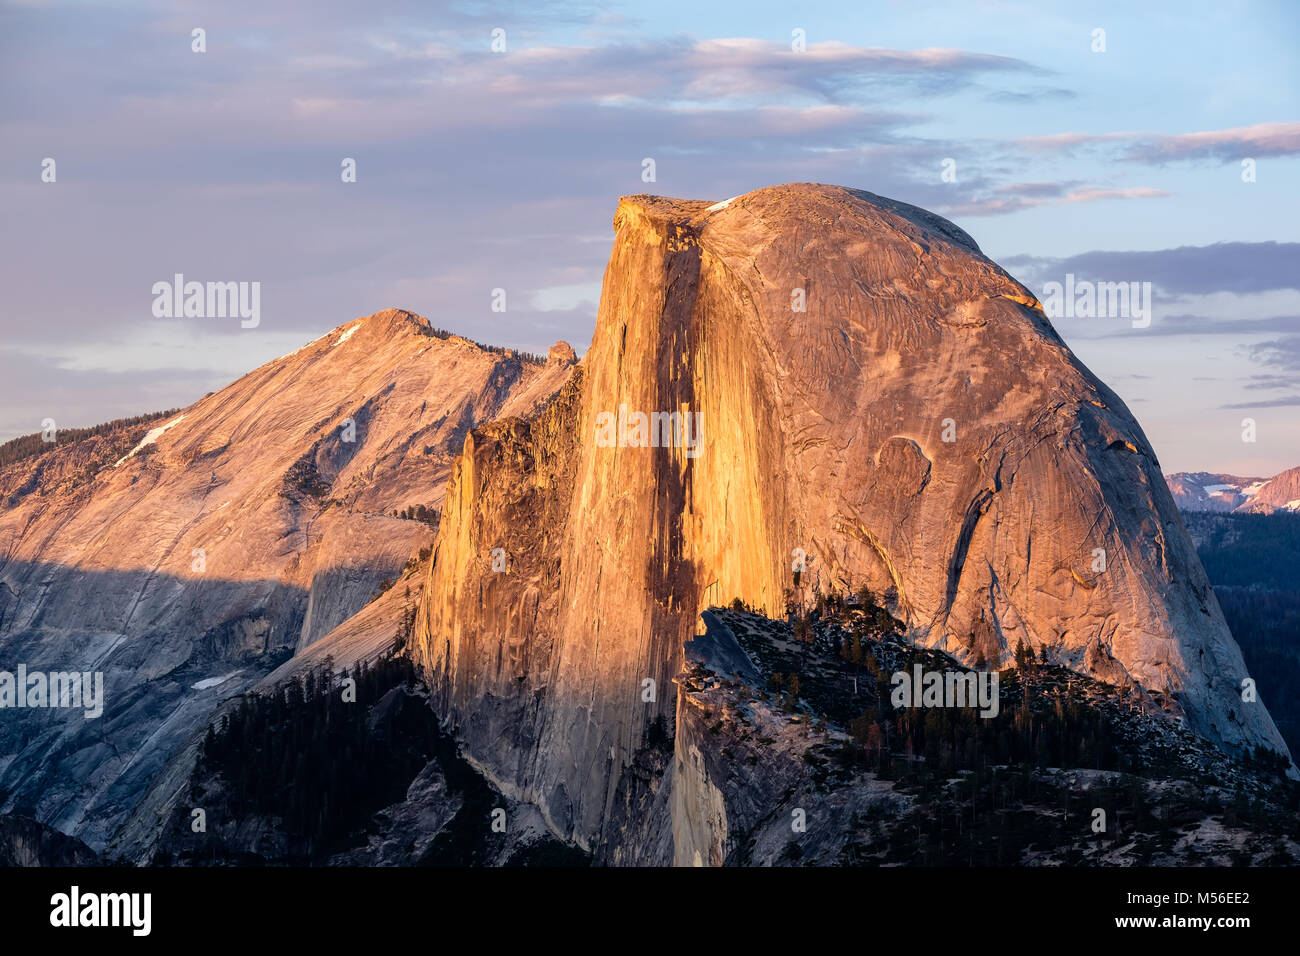 Half Dome rock formation in Yosemite National Park - Stock Image